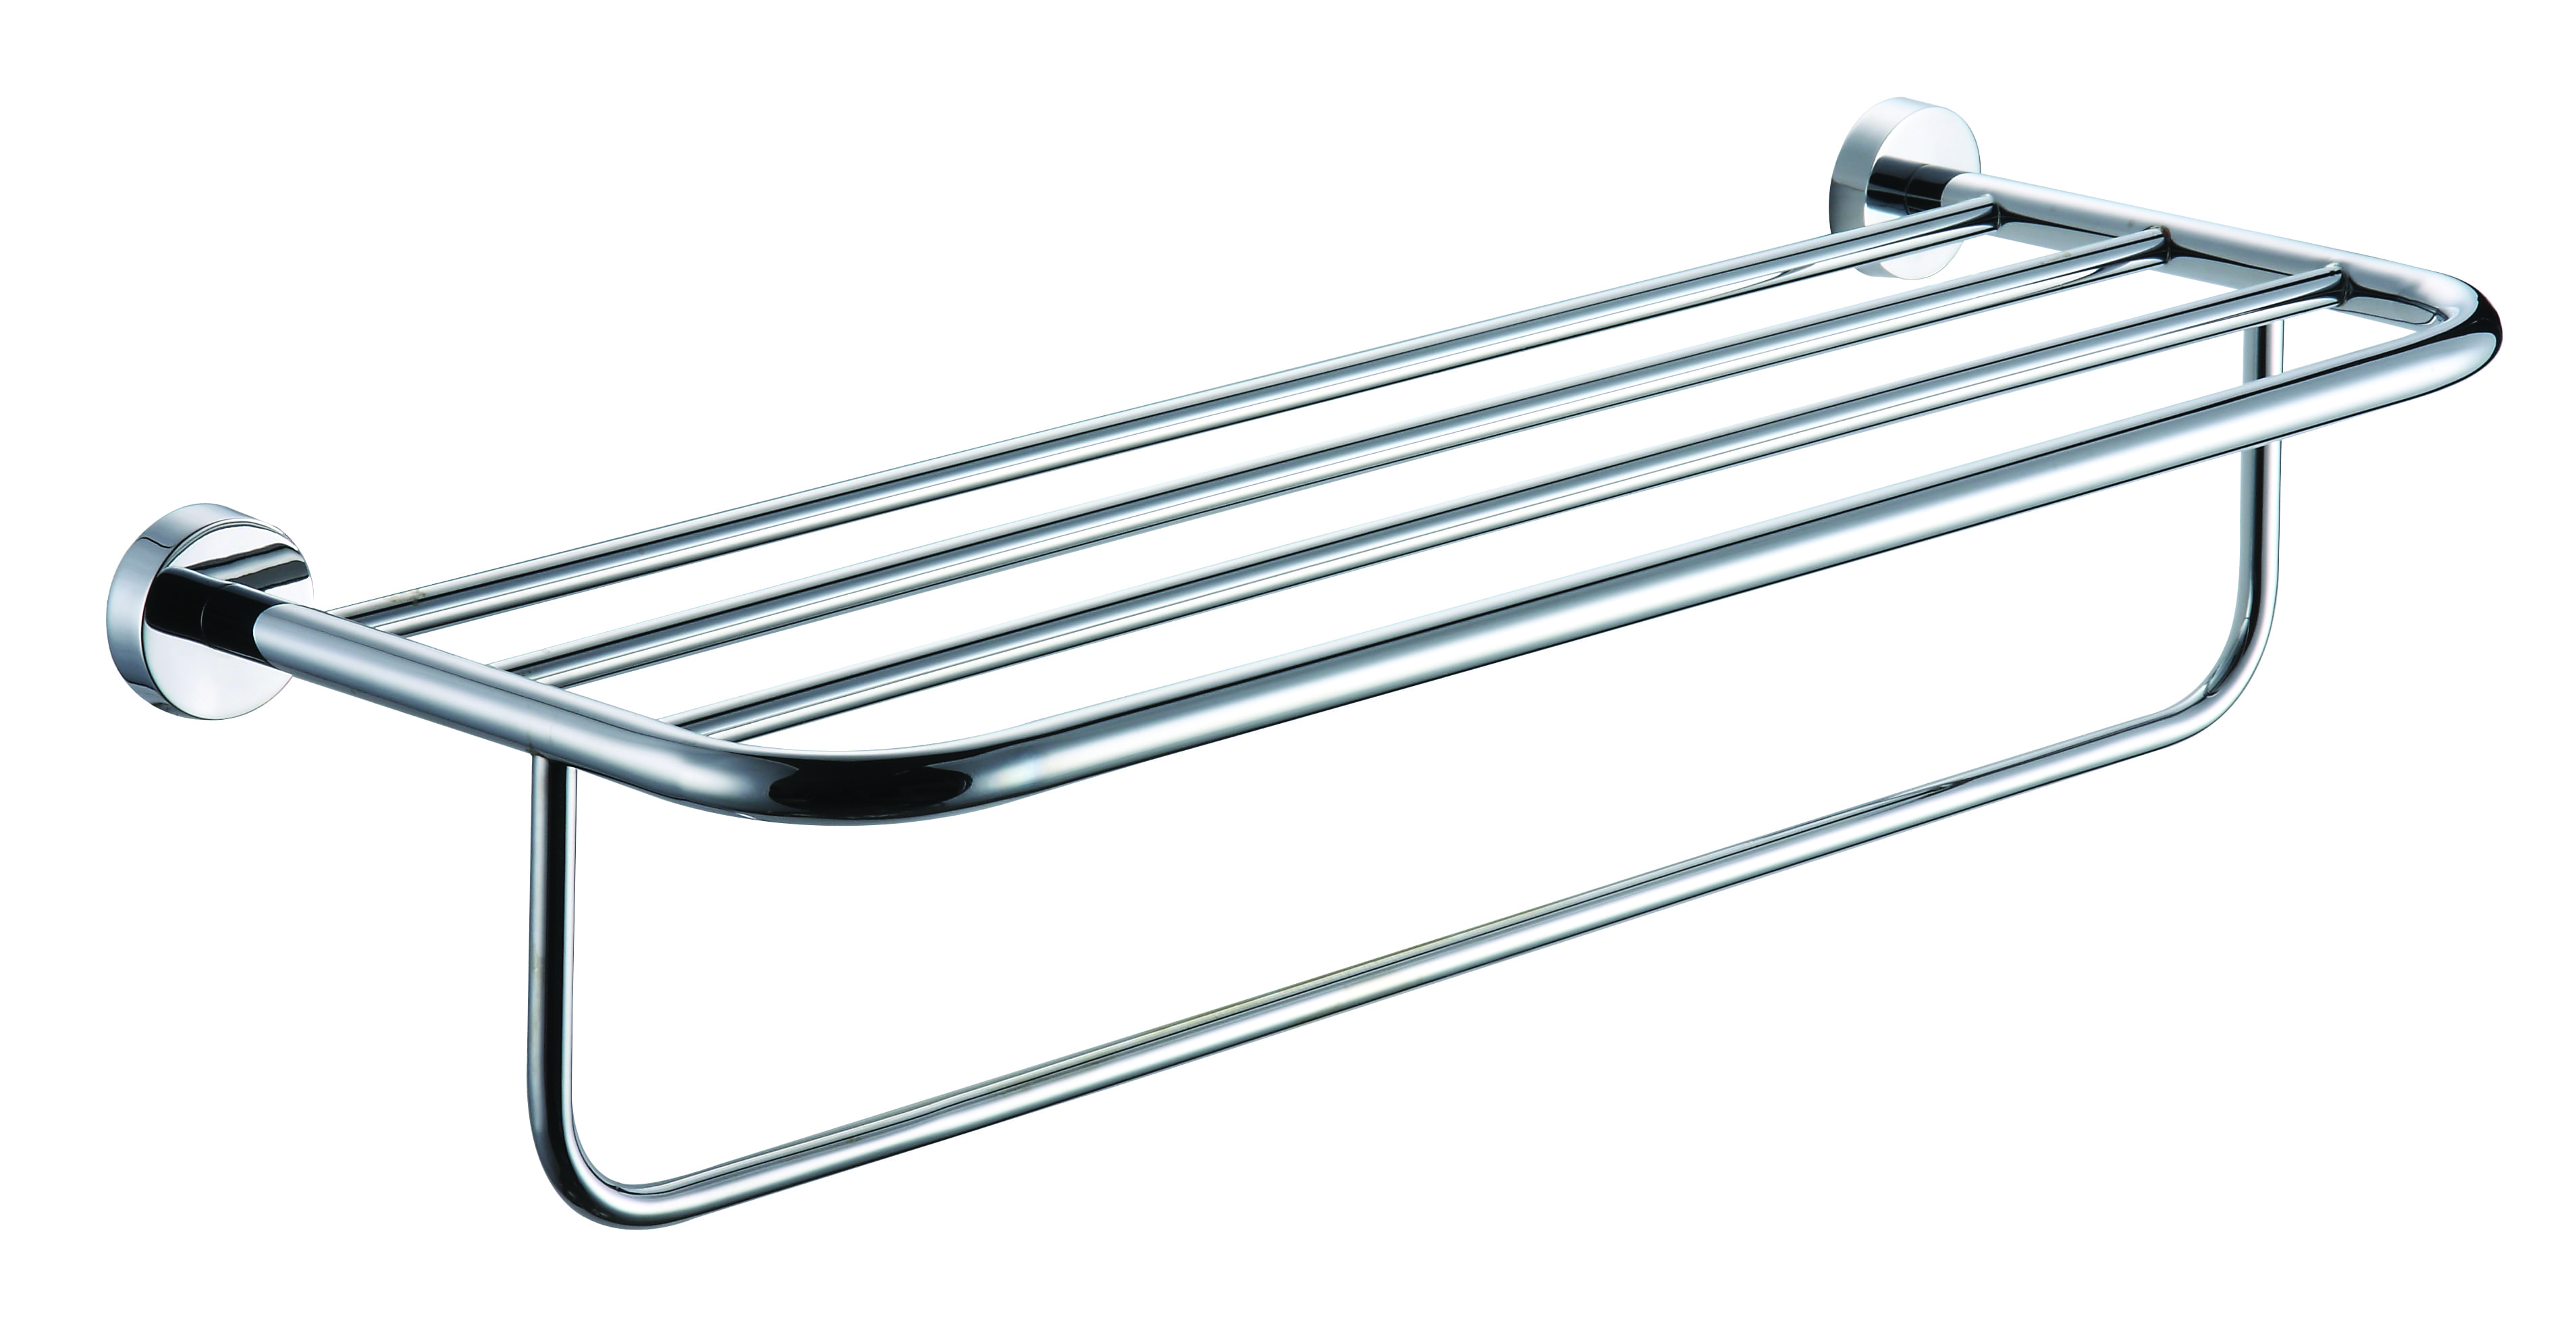 9504080 Posh Solus Towel Rack copy